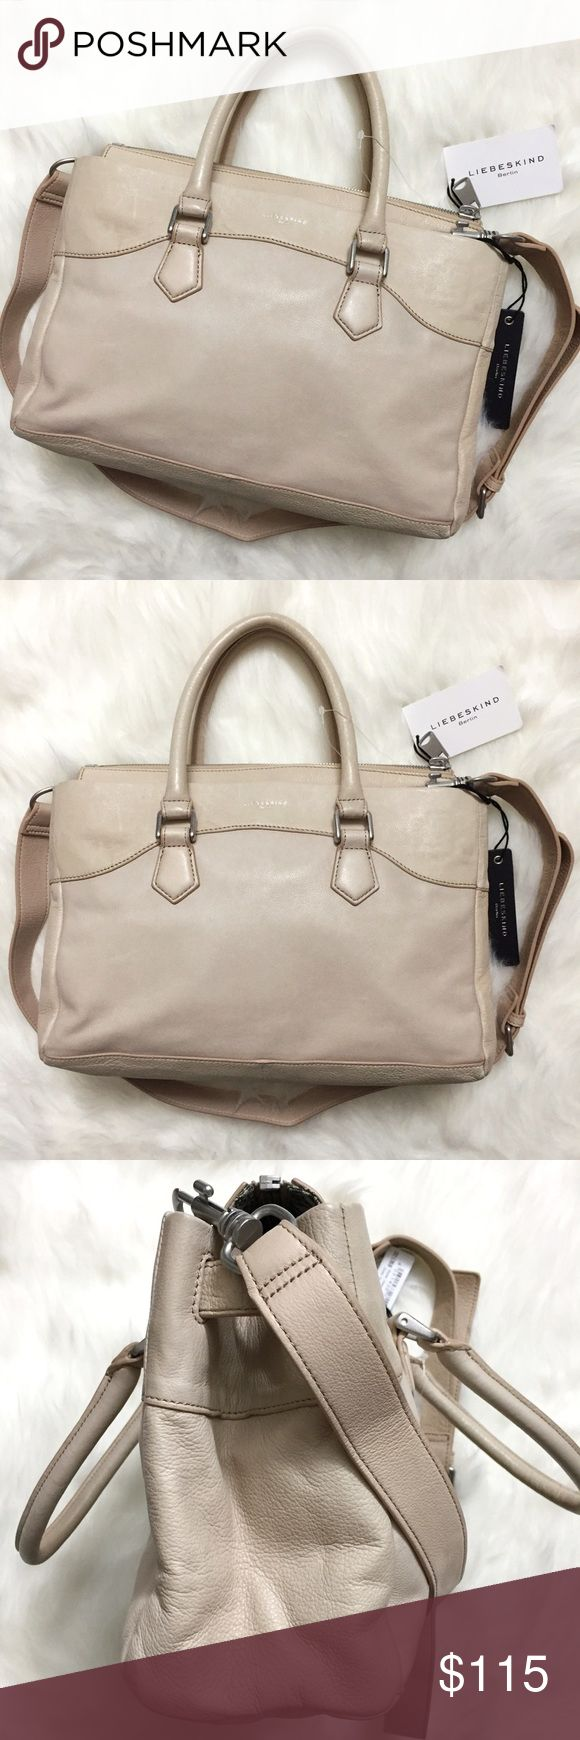 Liebeskind Berlin Georgia Vintage Leather Satchel Brand new with tags & dustbag. Retails for $298! This Liebeskind Berlin Georgia Vintage Leather Satchel Bag is made of the softest, buttery leather! Love that the silver hardware adds just the right amount of toughness! Color is called Powder Rose and looks like a neutral beige color with a tiny hint of powder pink. The color matches with so many outfits! Adjustable strap. Love the light and dark grey interior lining! Top zipper. Has 3 slide…